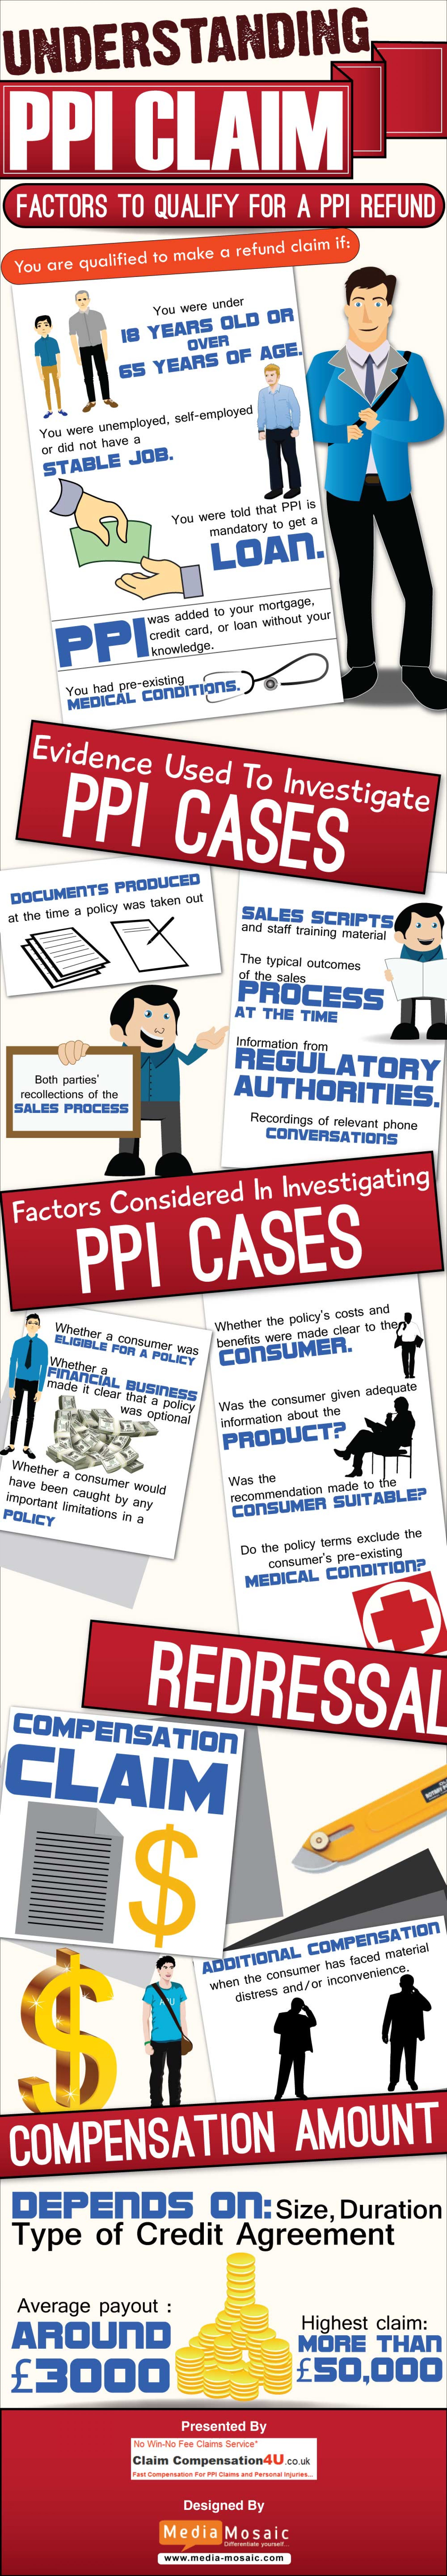 Understanding PPI Claim [Infographic] Infographic